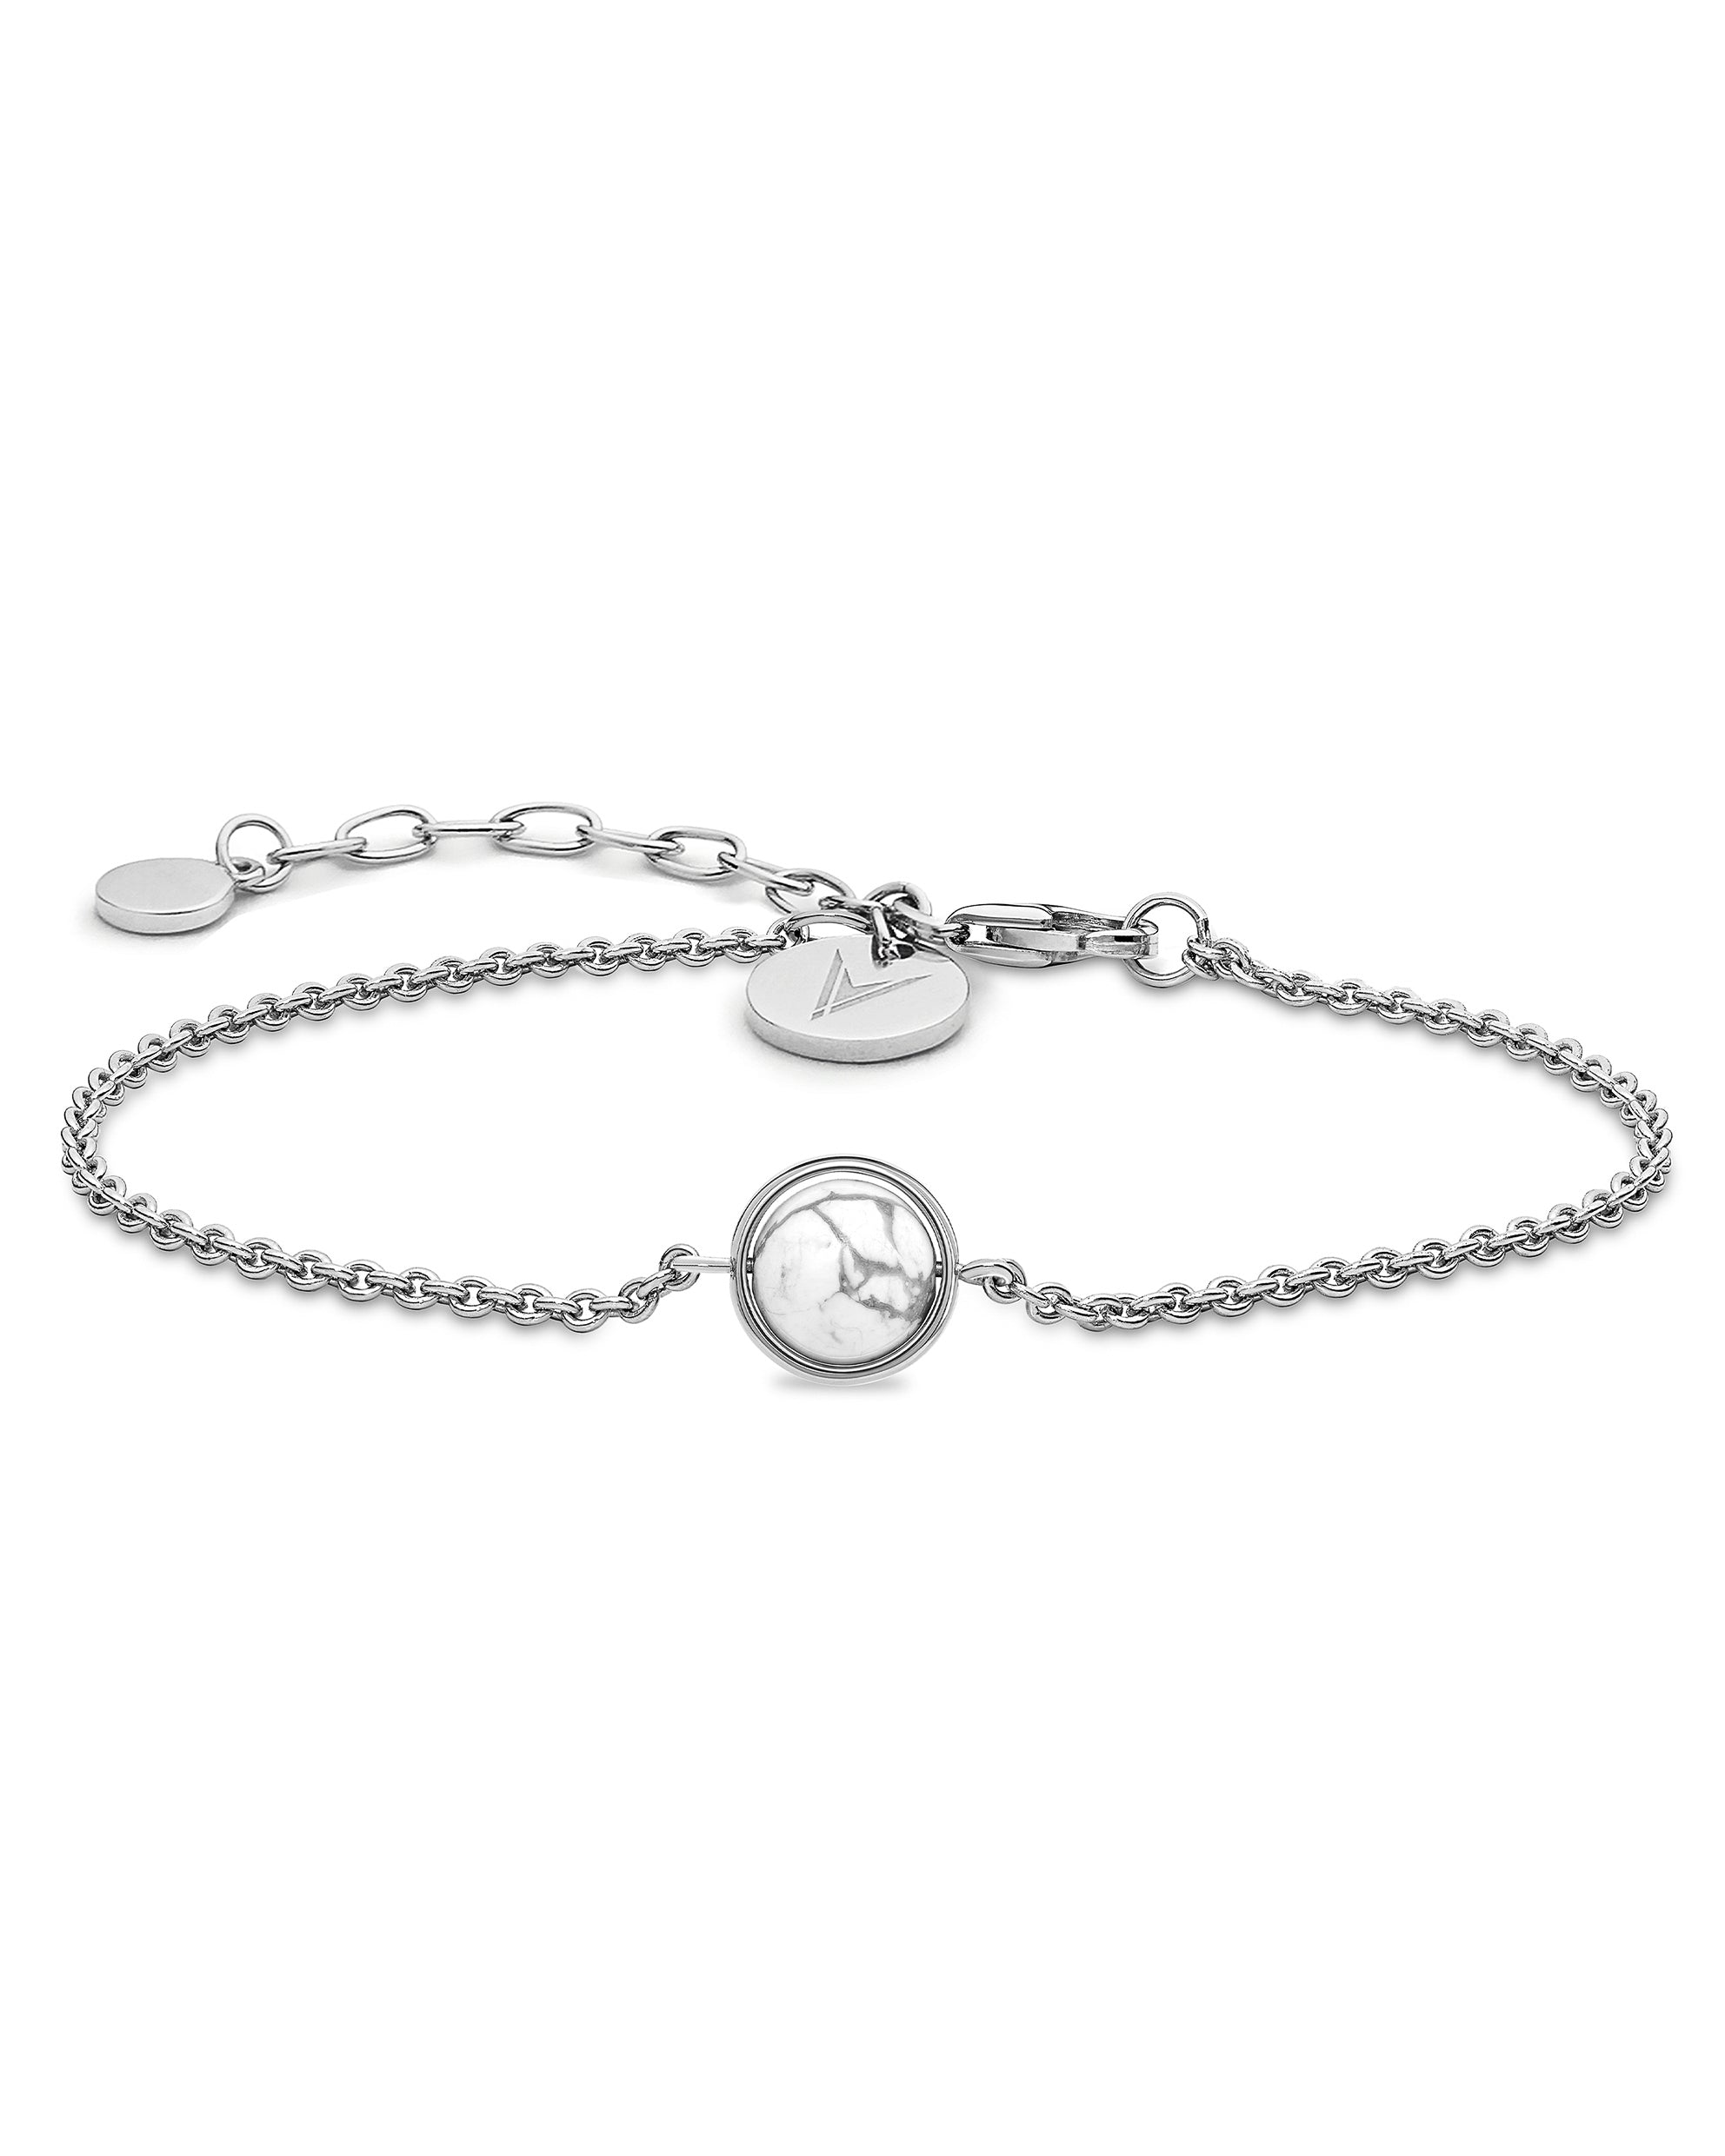 The Bracelet - Silver + Carrara